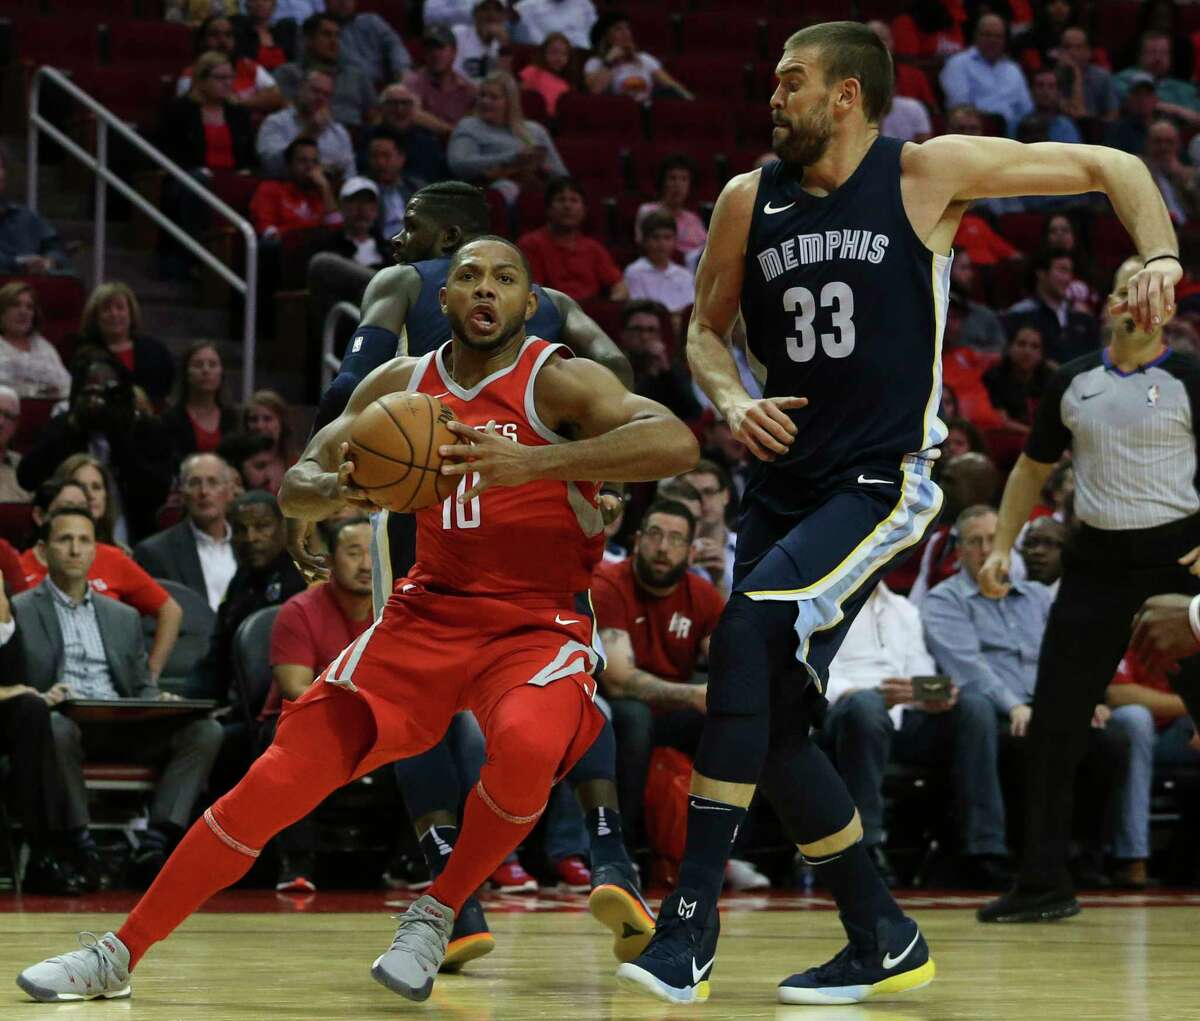 Houston Rockets guard Eric Gordon (10) moves toward the basket while Memphis Grizzlies center Marc Gasol (33) is trying to stop him during the second quarter of the NBA game at Toyota Center Monday, Oct. 23, 2017, in Houston.